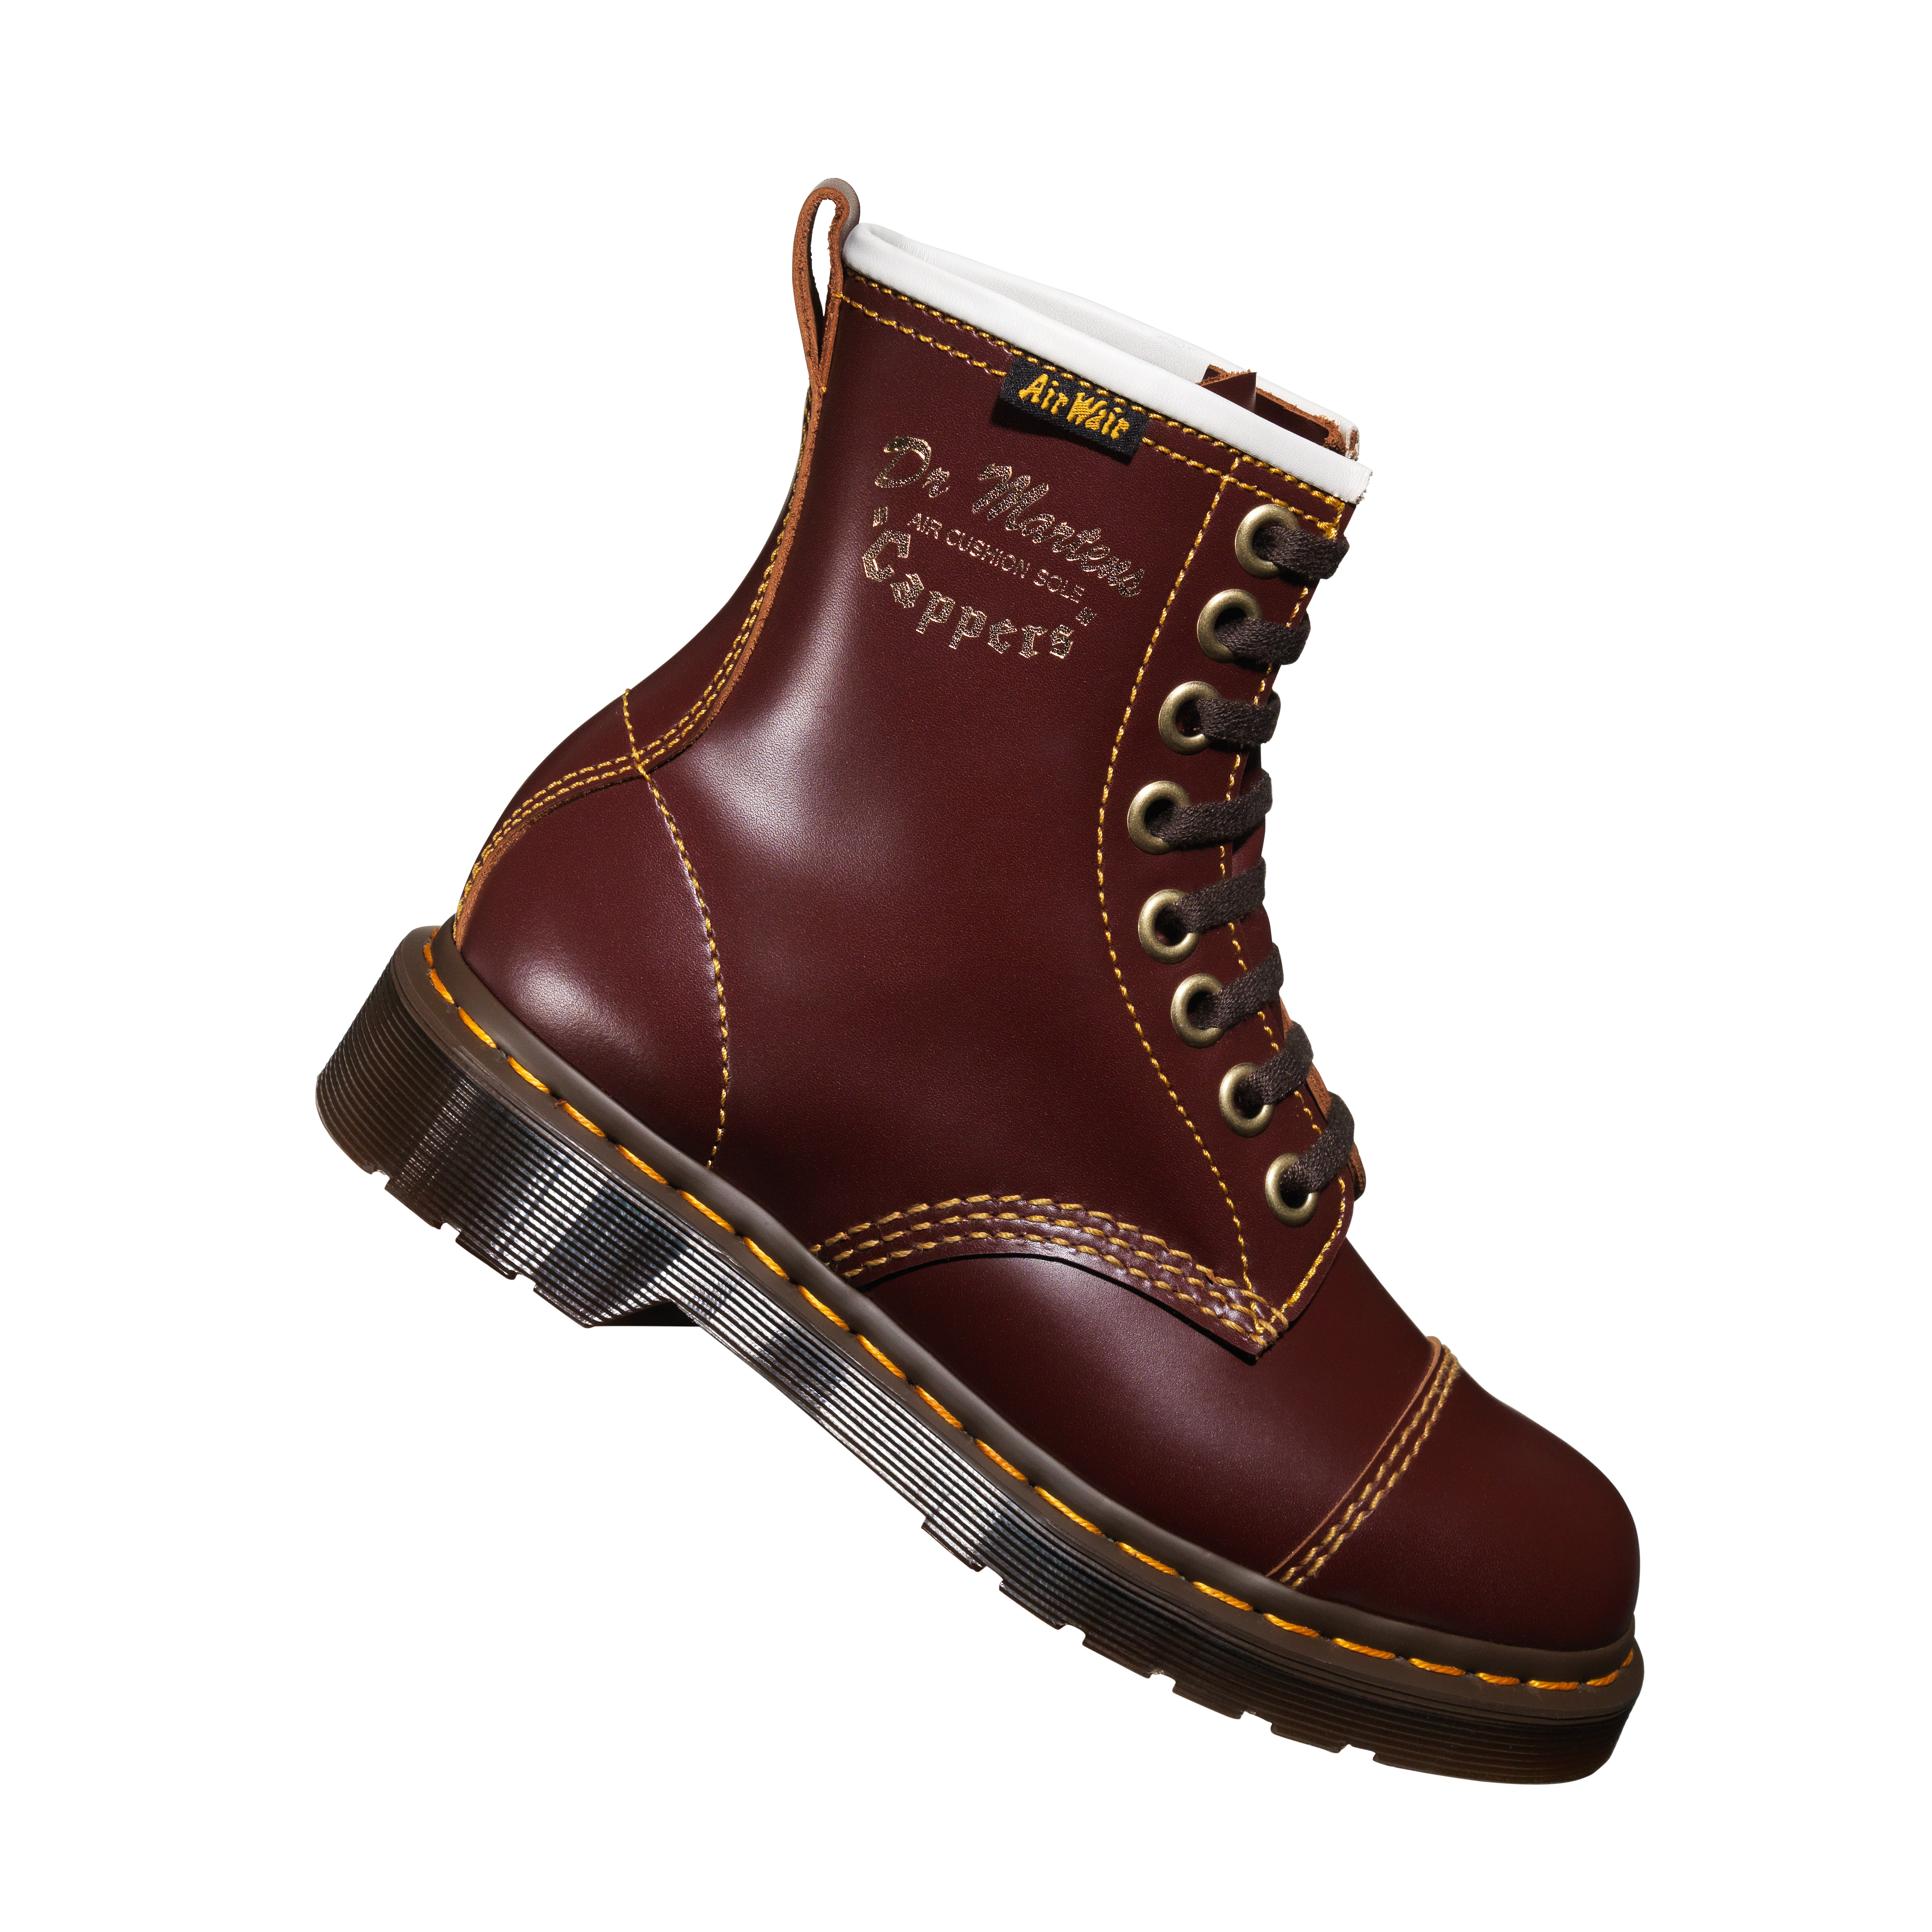 dr martens spirit of 69 footwear collection defy new york sneakers music fashion life. Black Bedroom Furniture Sets. Home Design Ideas